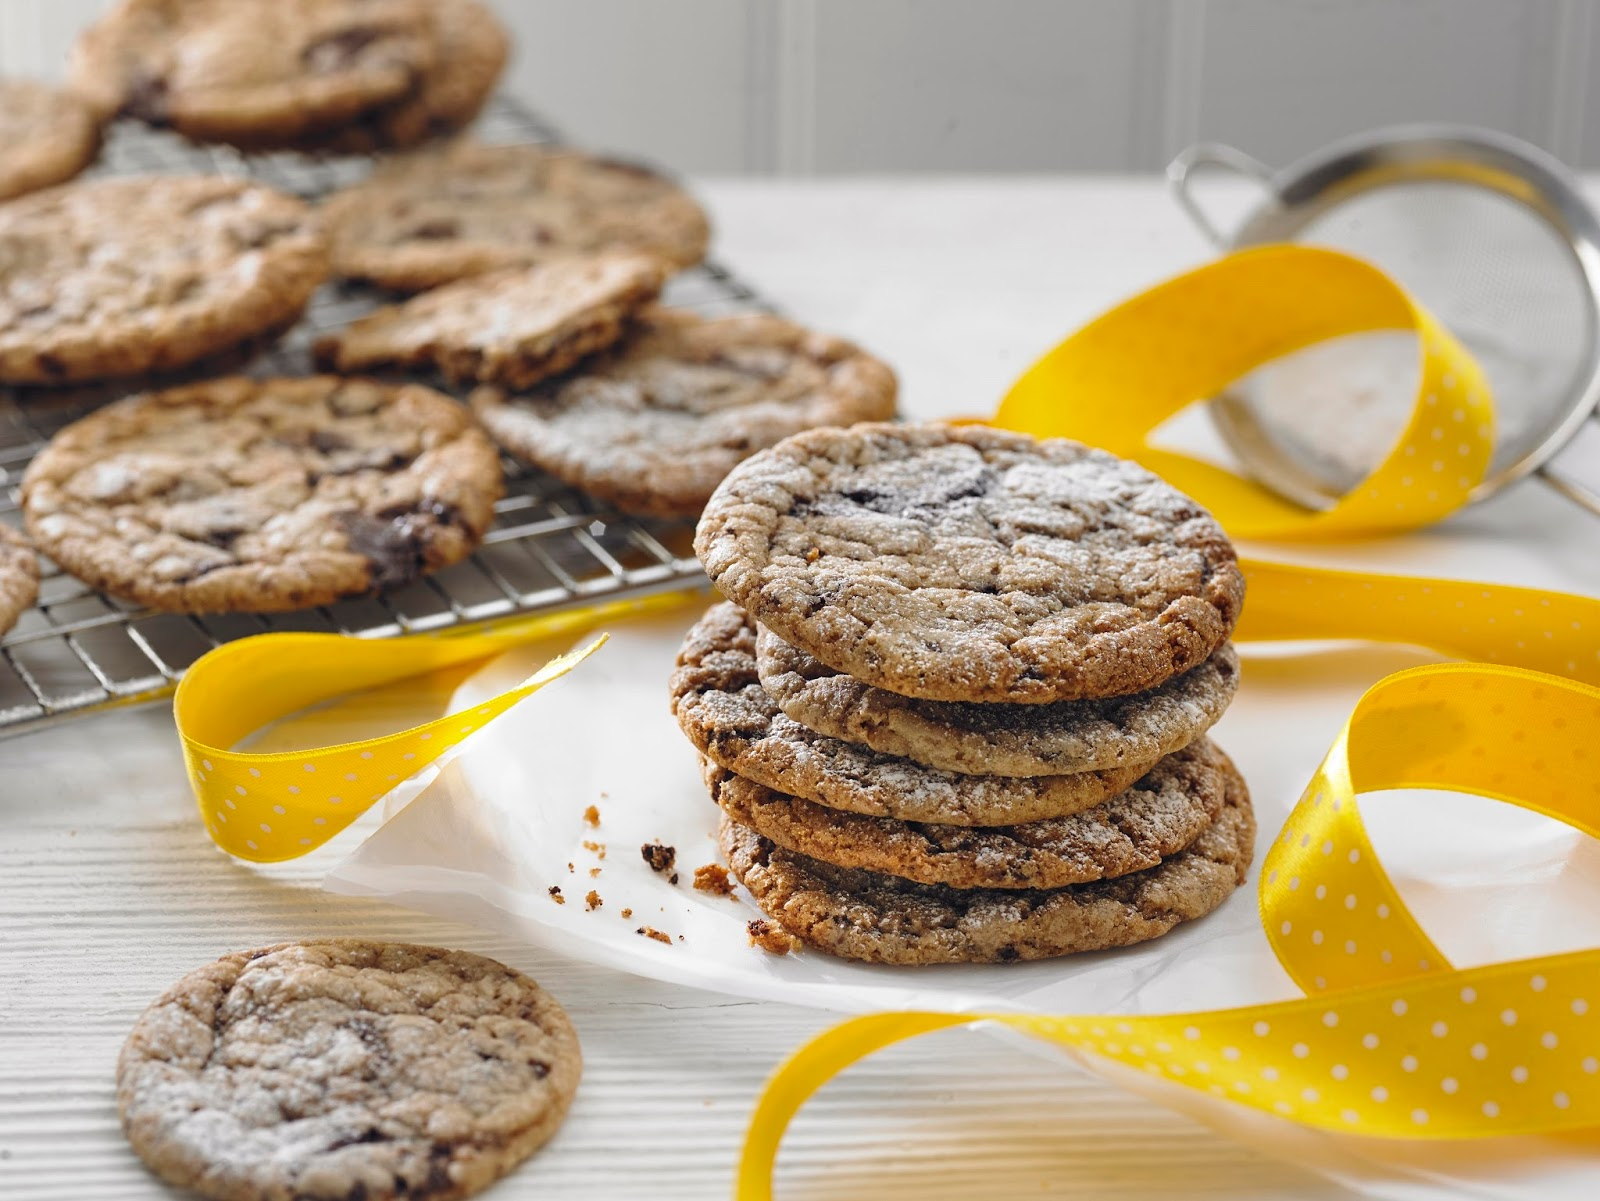 10 Yummy Homemade Cookie Recipes To Bake